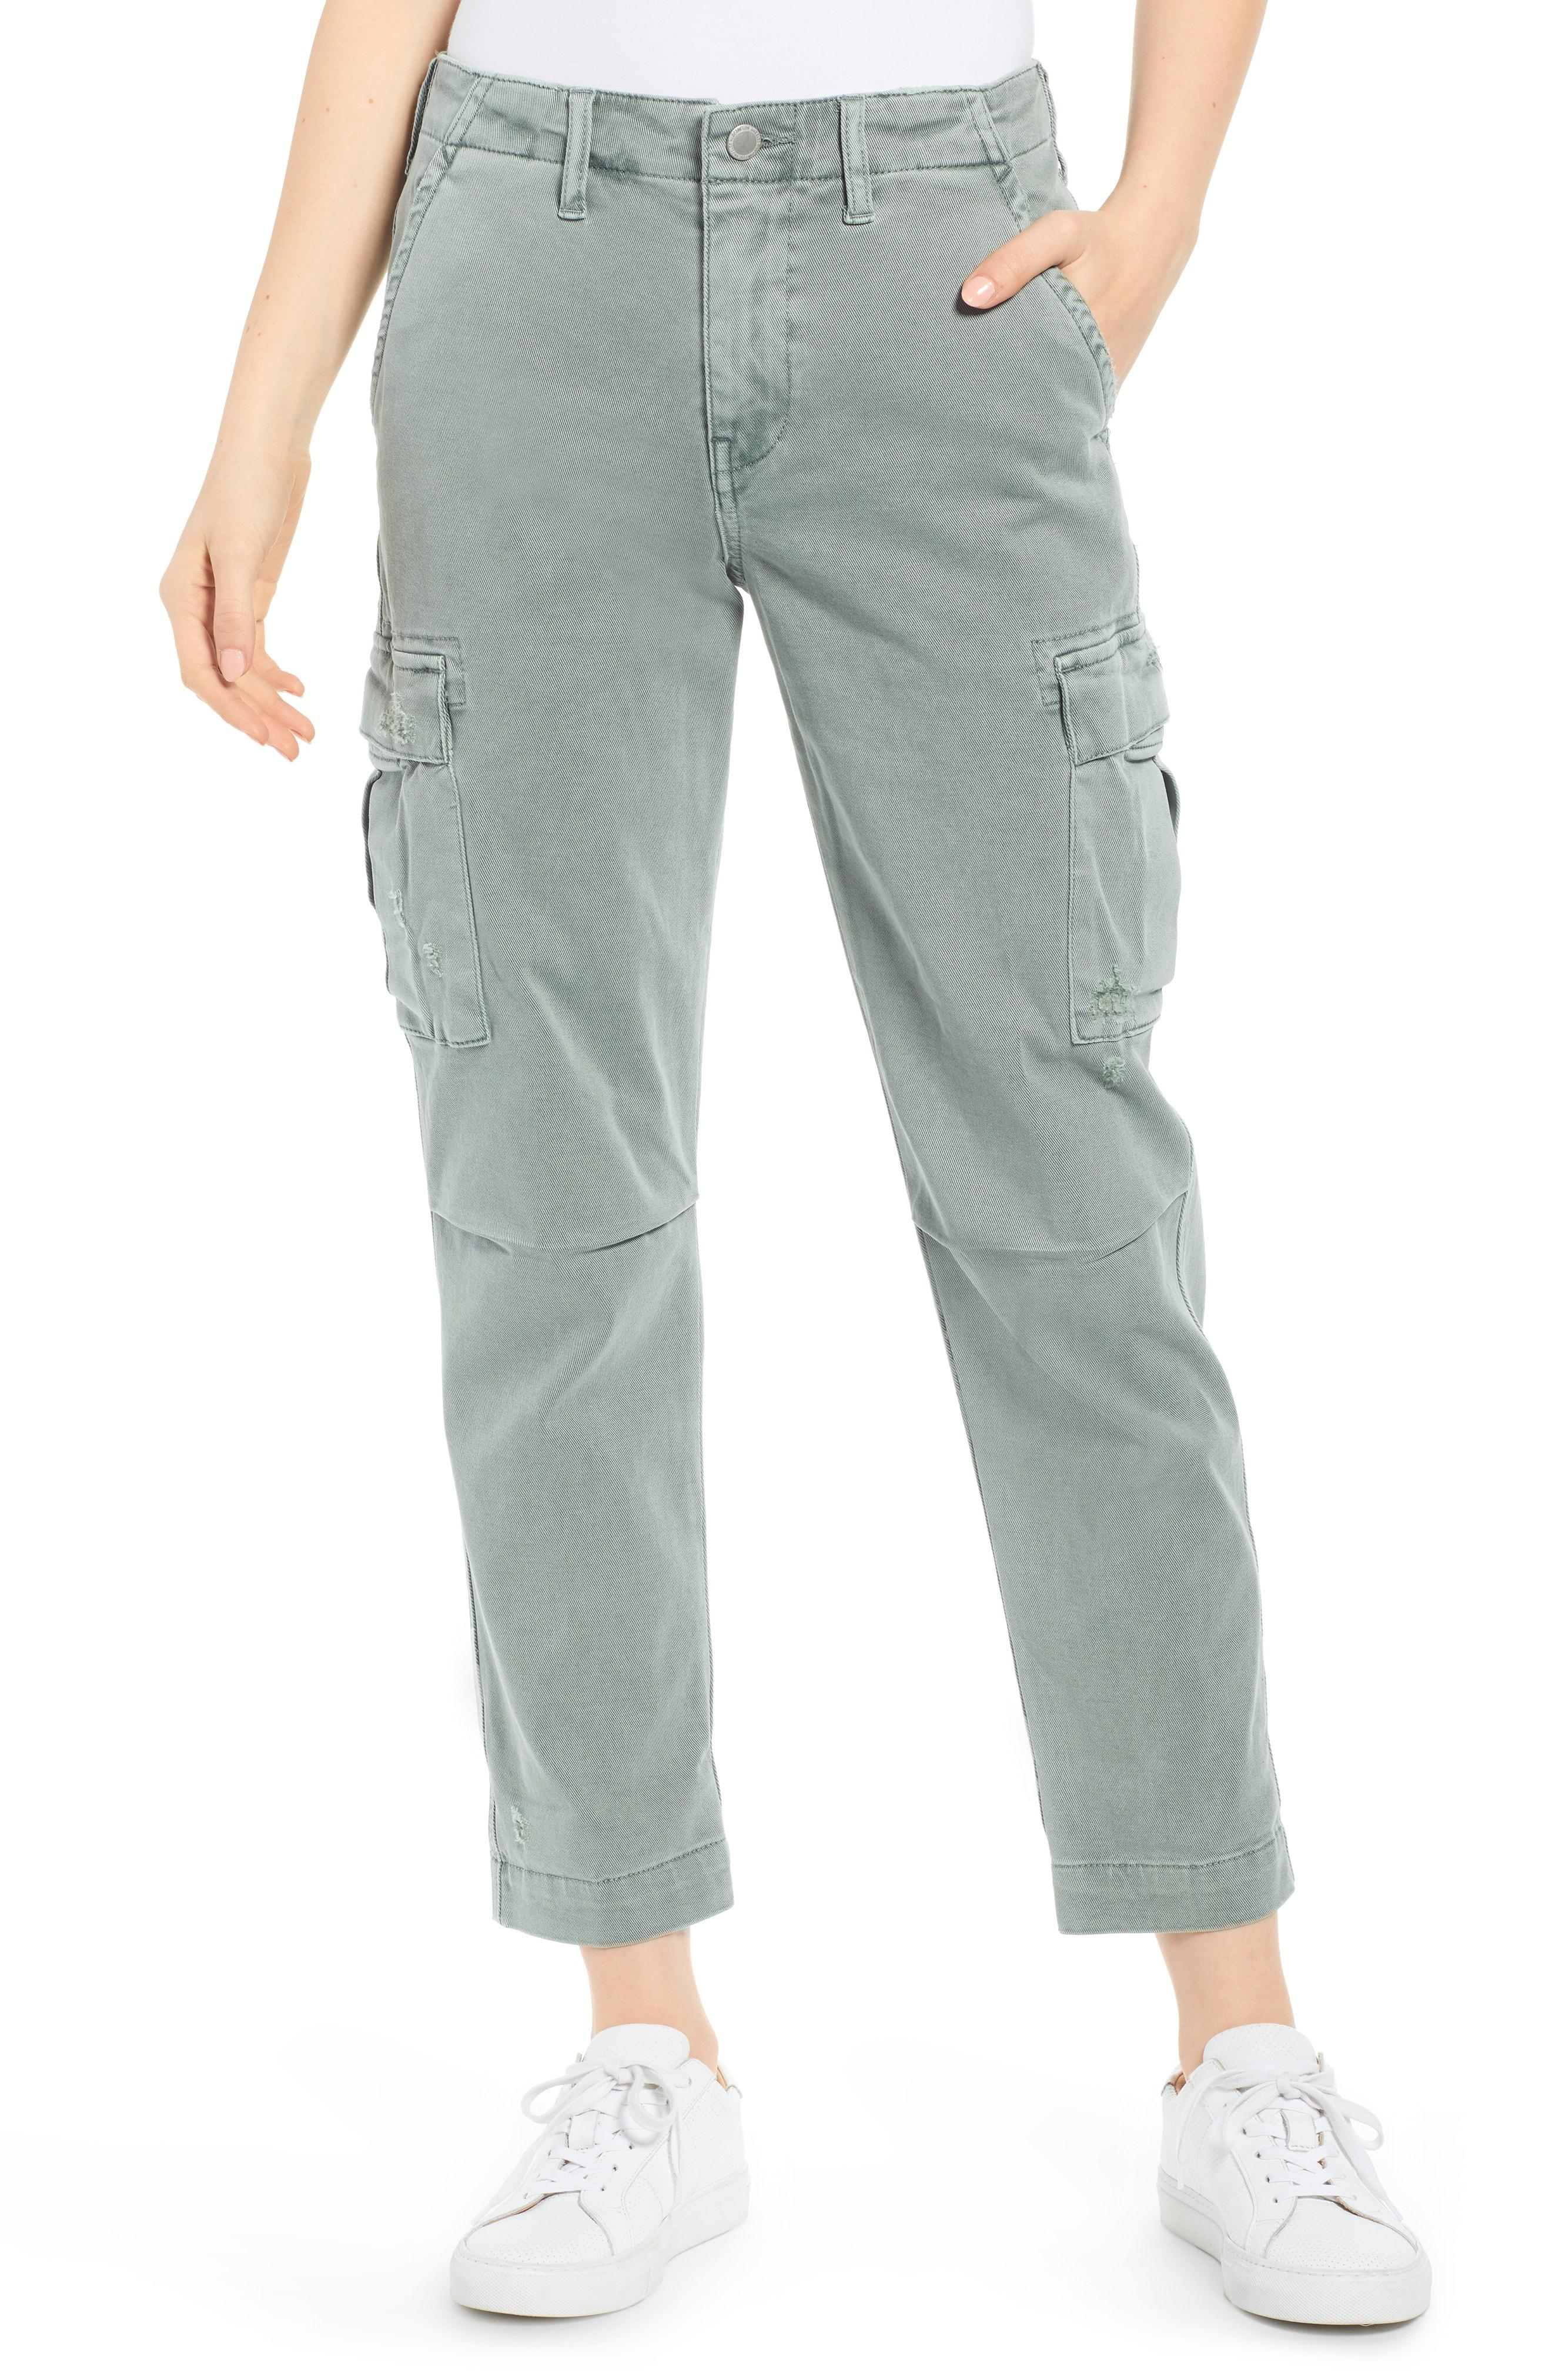 474895a3943b7 Lyst - Hudson Jeans Jane Relaxed Cargo Pants in Green